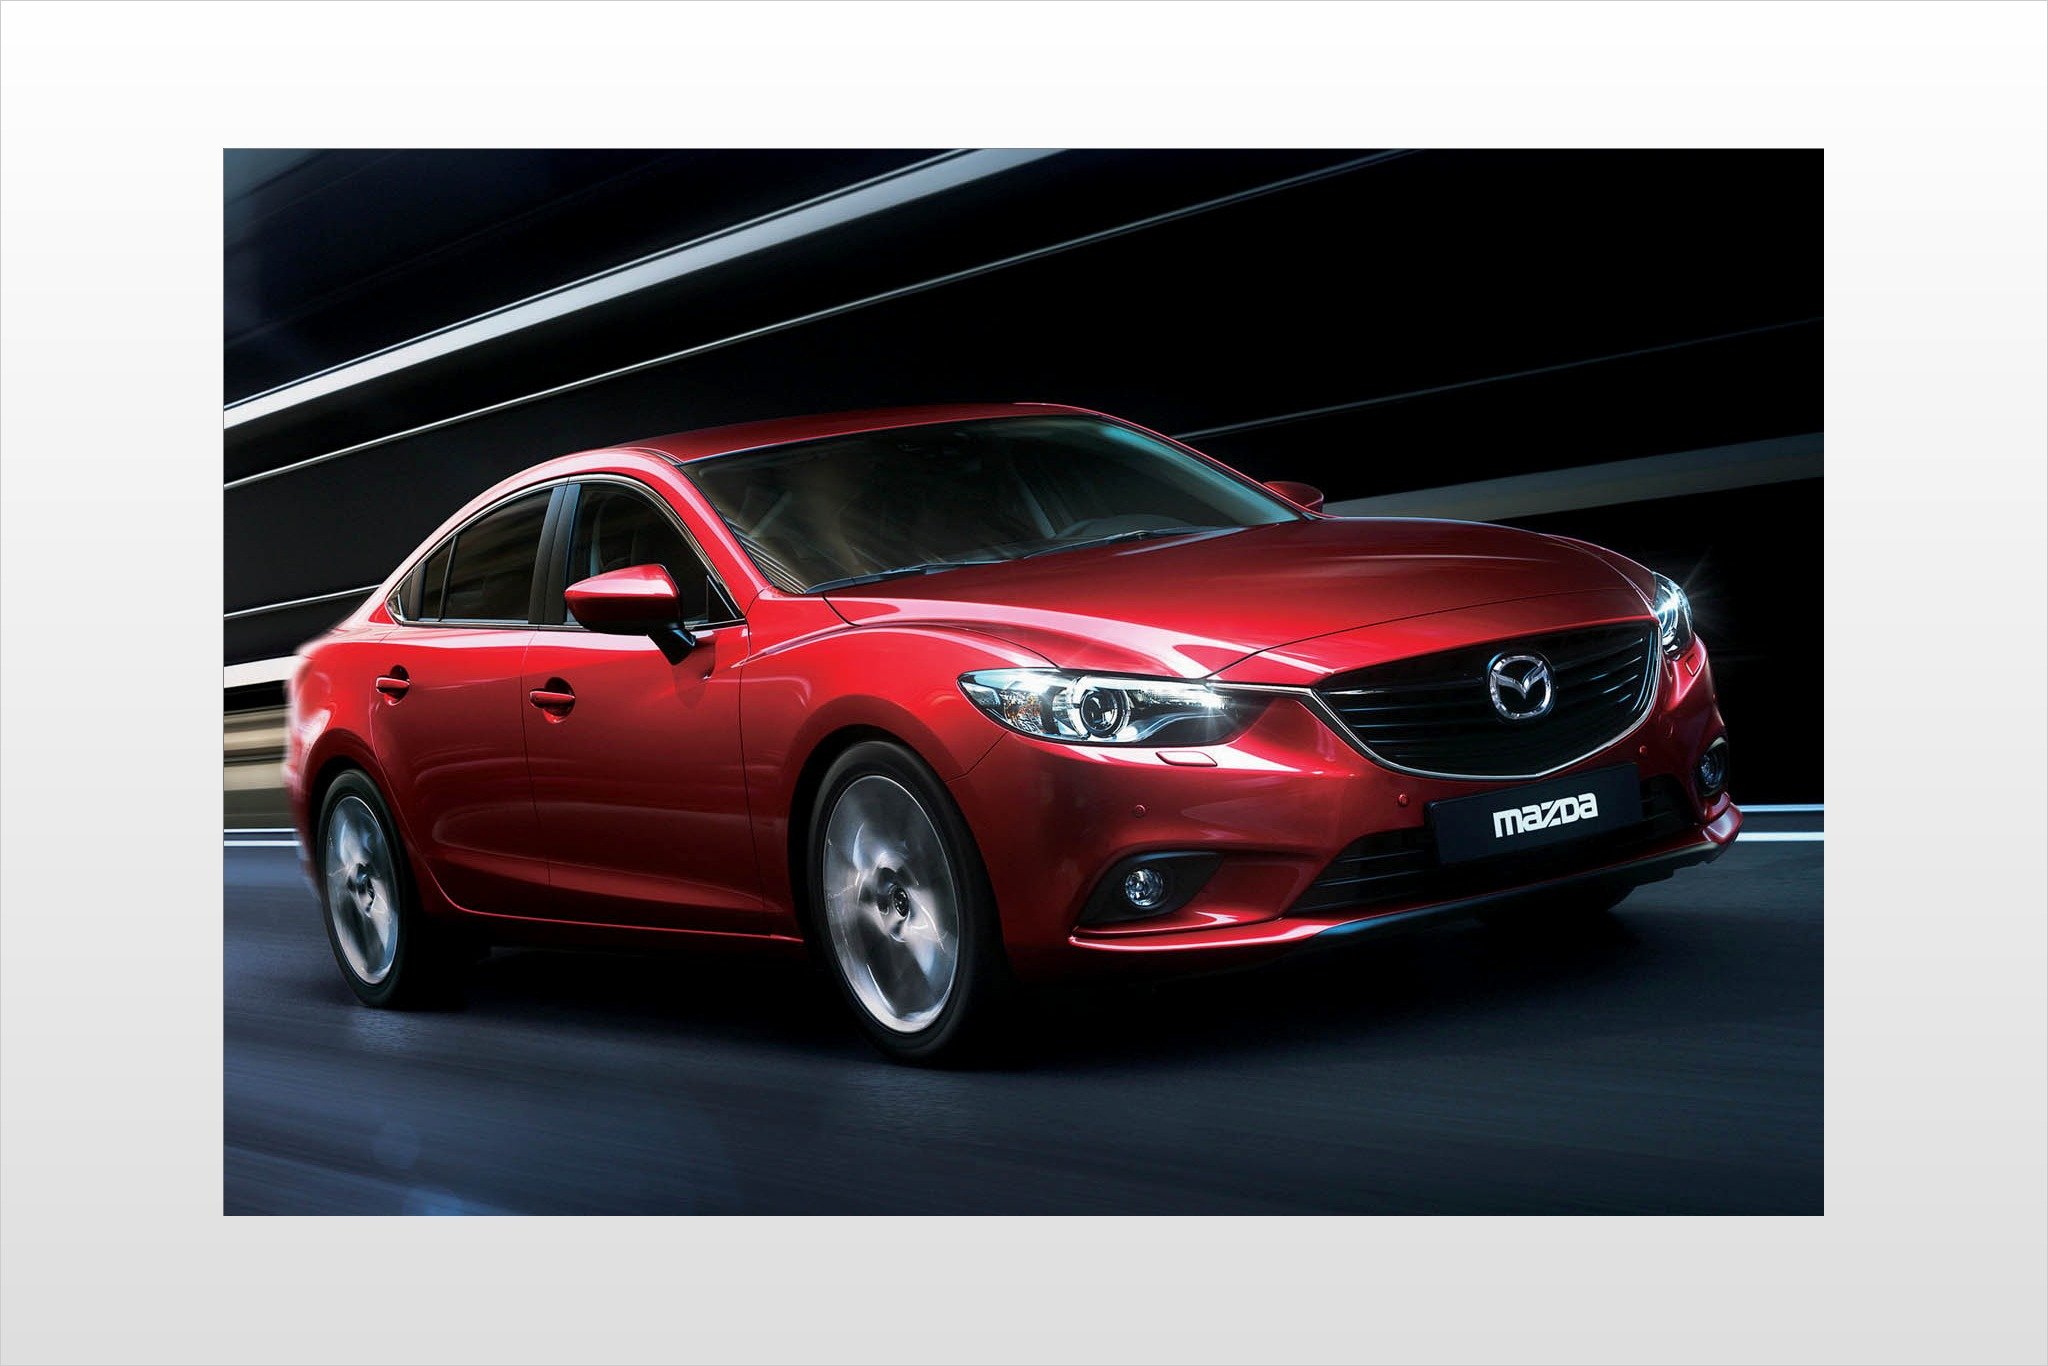 2014 used mazda mazda6 i grand autos weblog. Black Bedroom Furniture Sets. Home Design Ideas